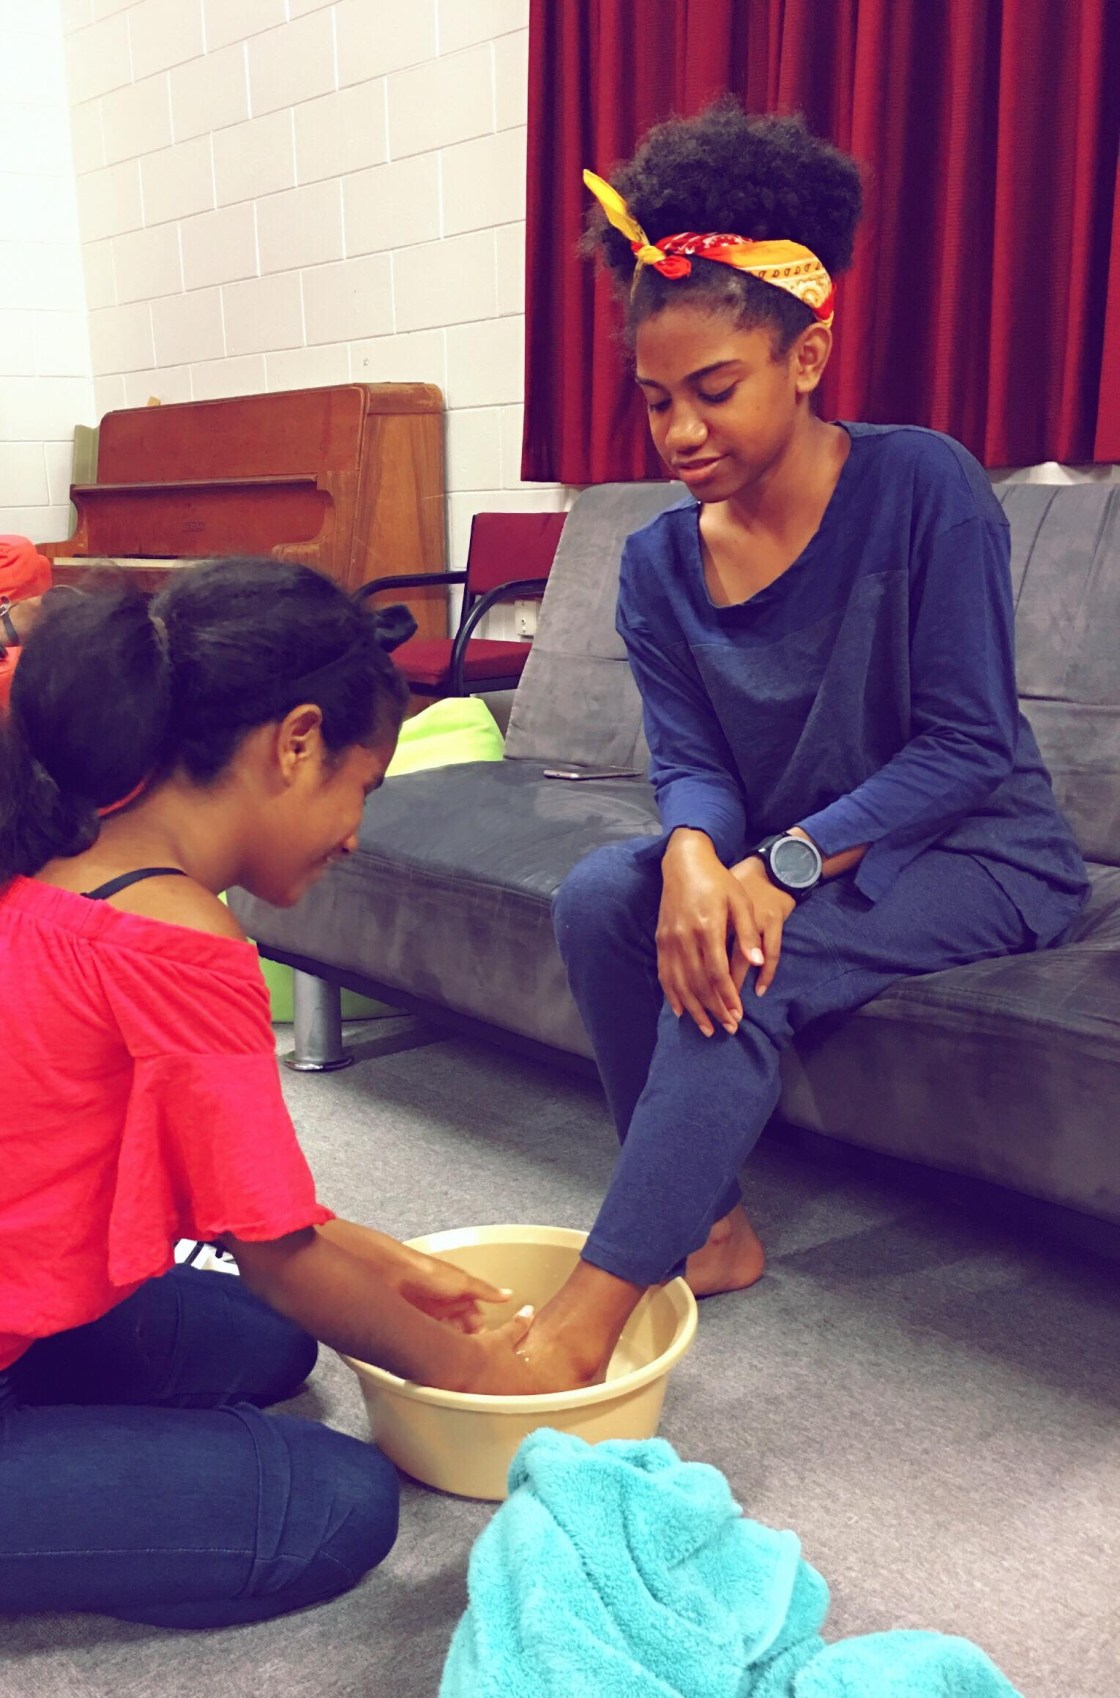 Foot washing during Friday night's worship. The girl sitting is Siunari'i Paiva, Y9, and the other is Molly Pokaran, Y10